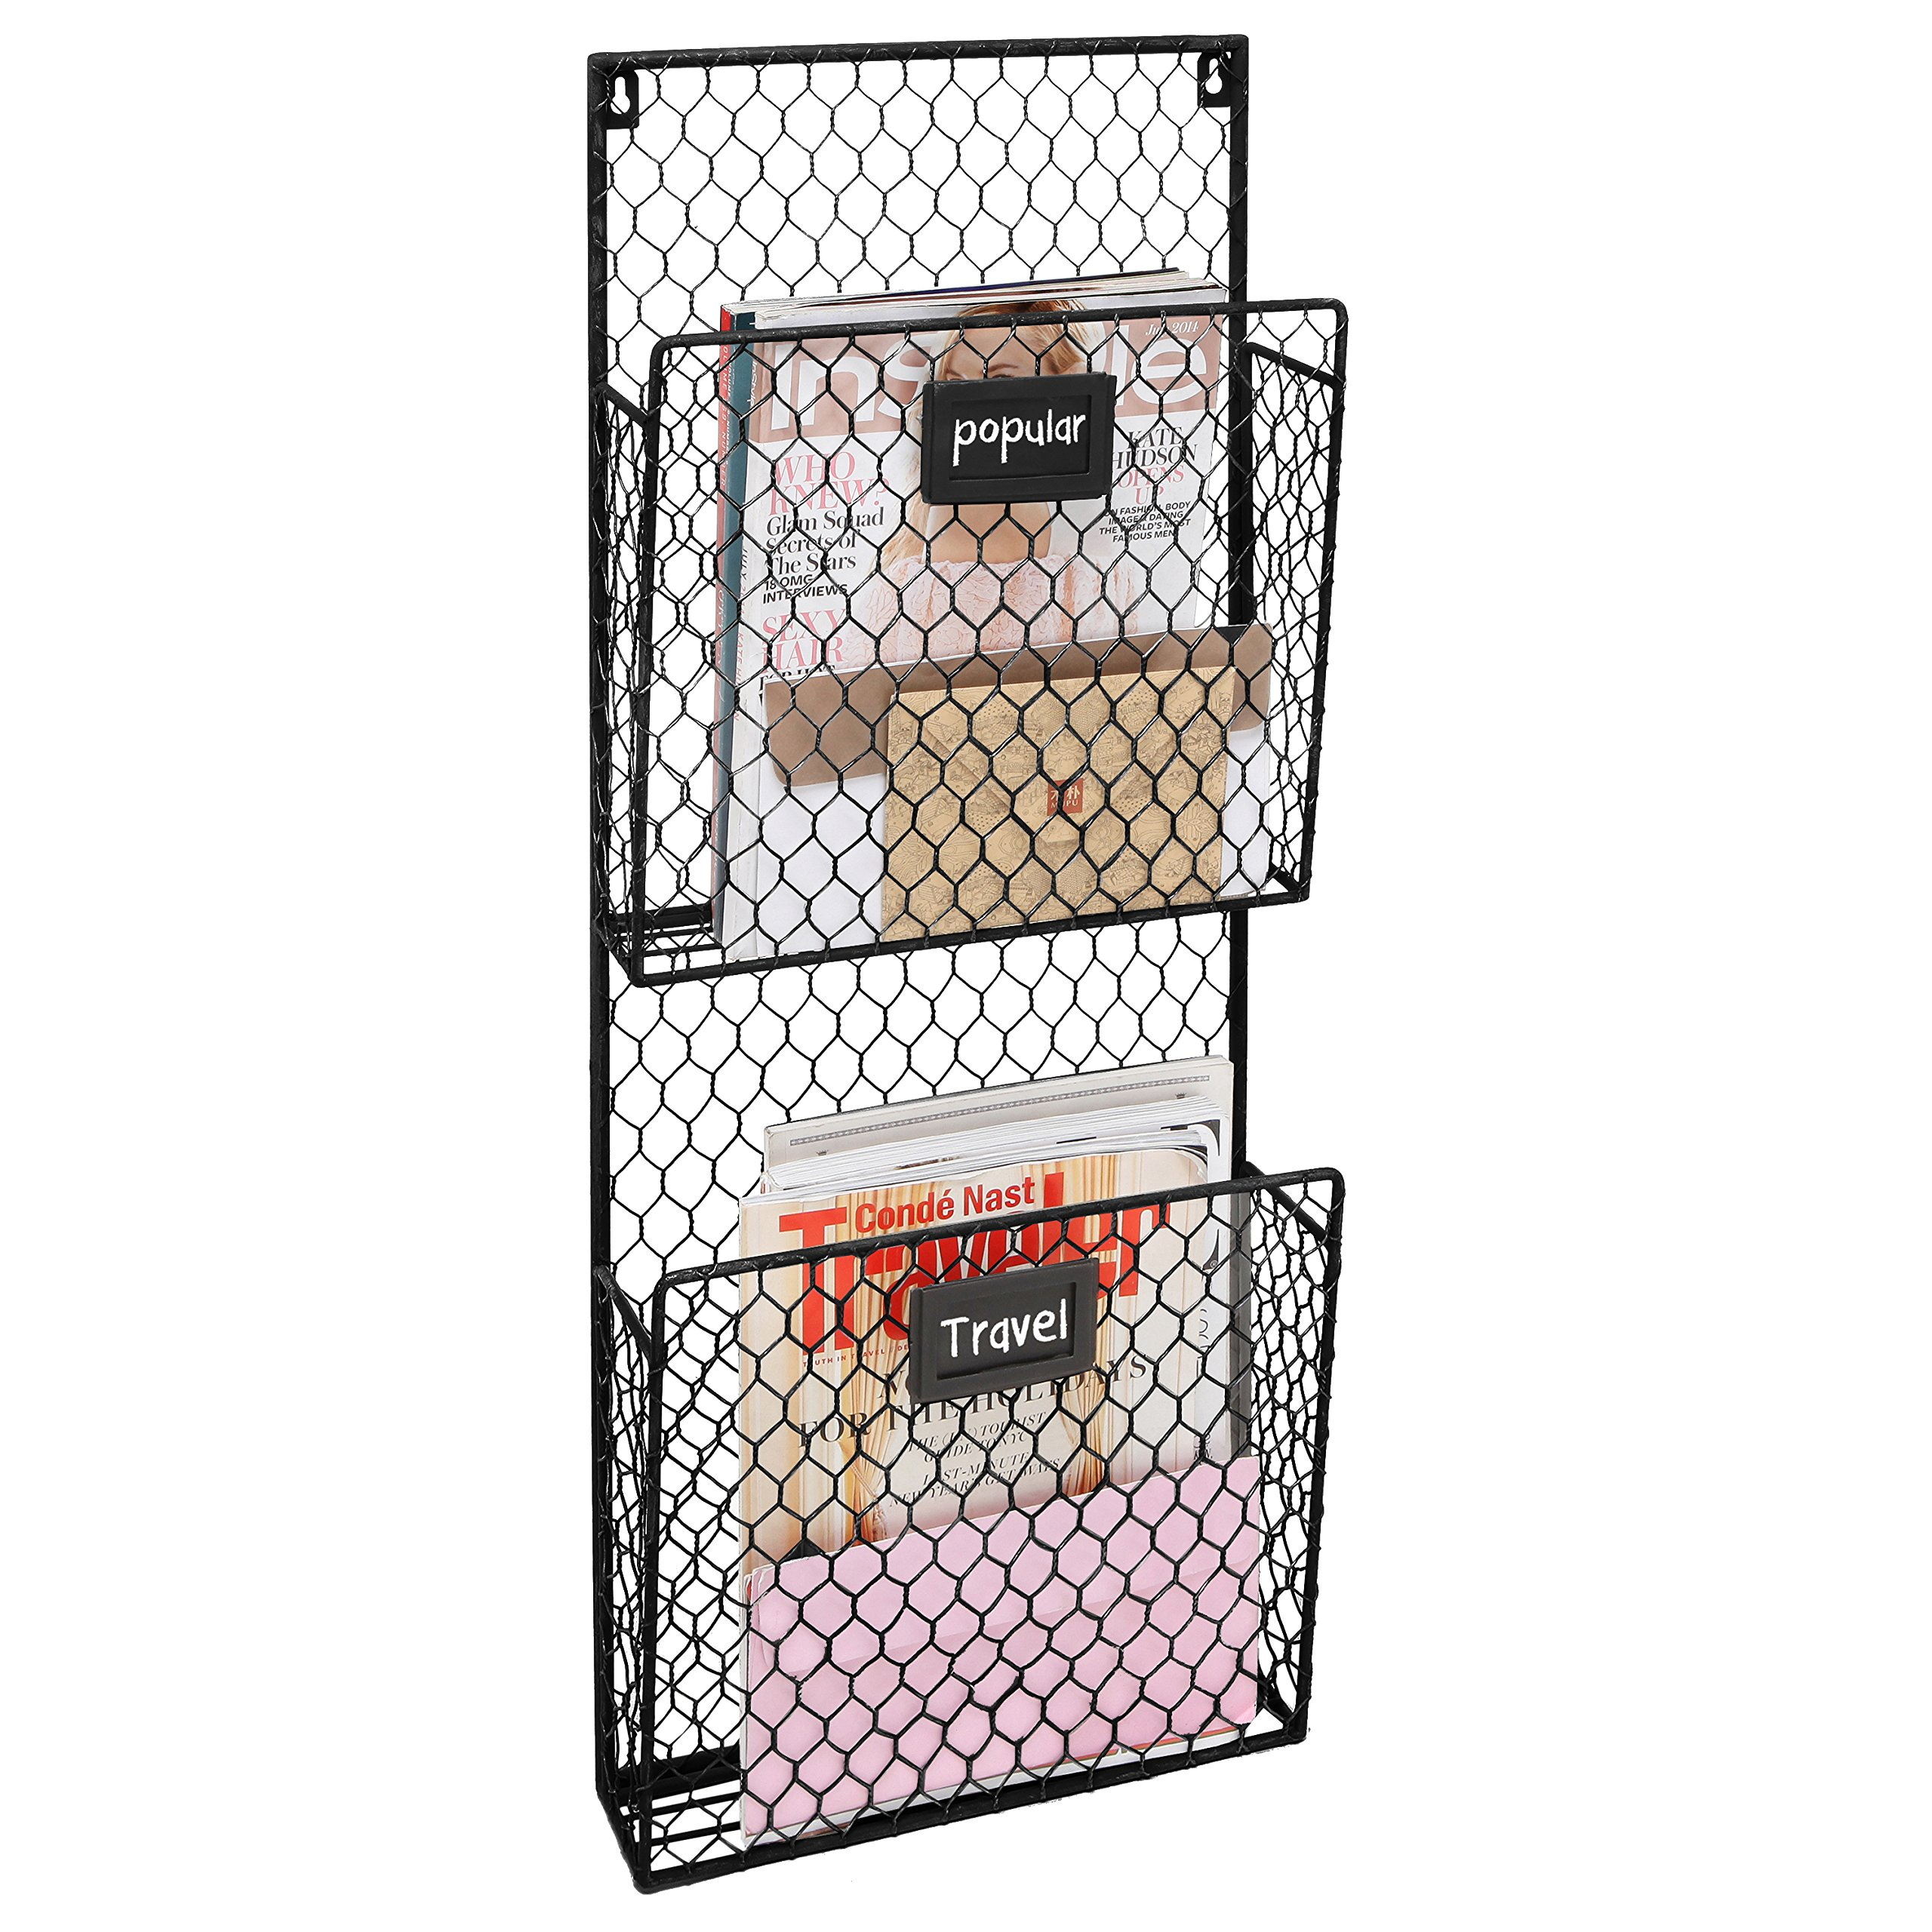 2-Pocket Rustic Wall Mounted Chicken Wire Metal Document Rack/Magazine Holder with Chalkboard Labels